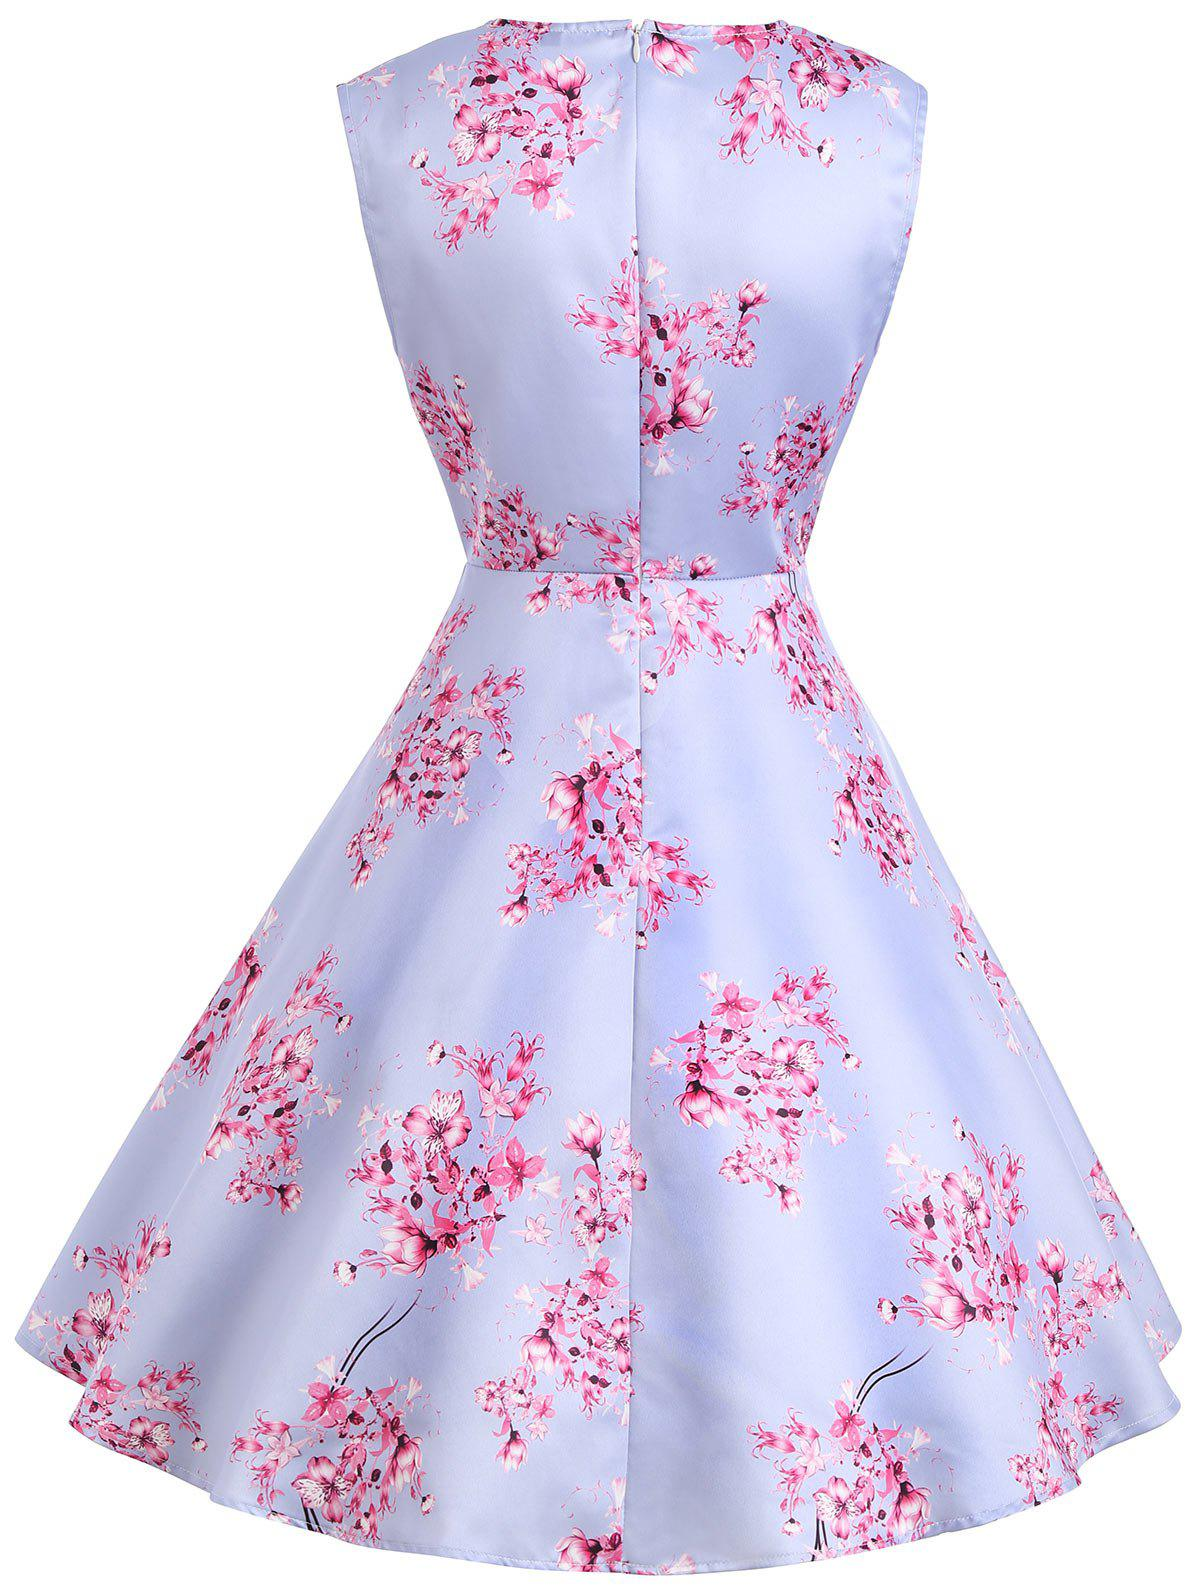 Vintage Flower Print Sleeveless Dress - LIGHT PURPLE M